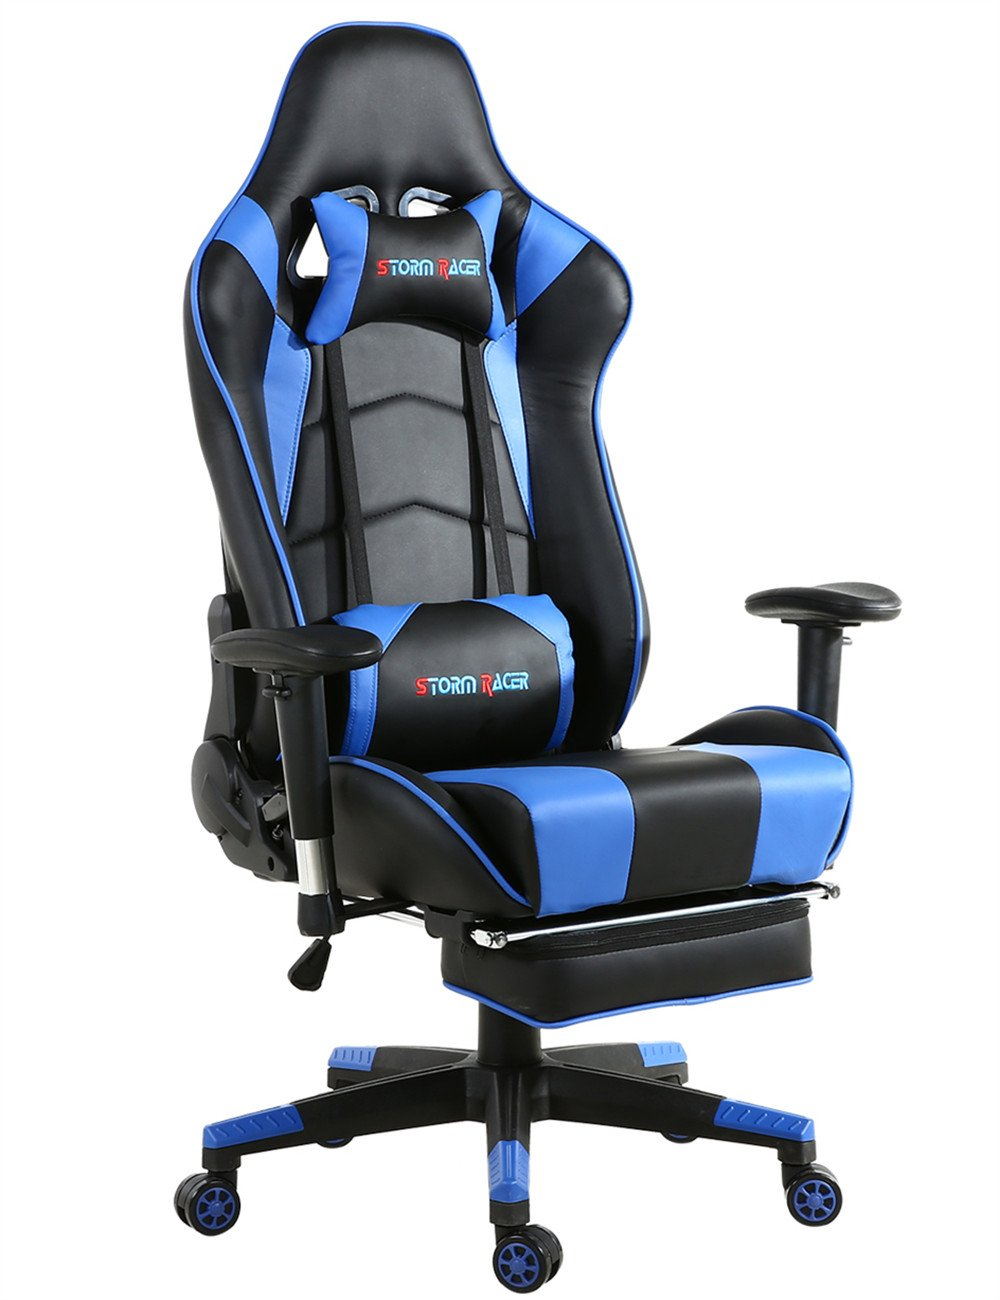 Big Gaming Chair for PC Ergonomic Racing Game Chair Computer Chairs with Footrest,Blue/Black